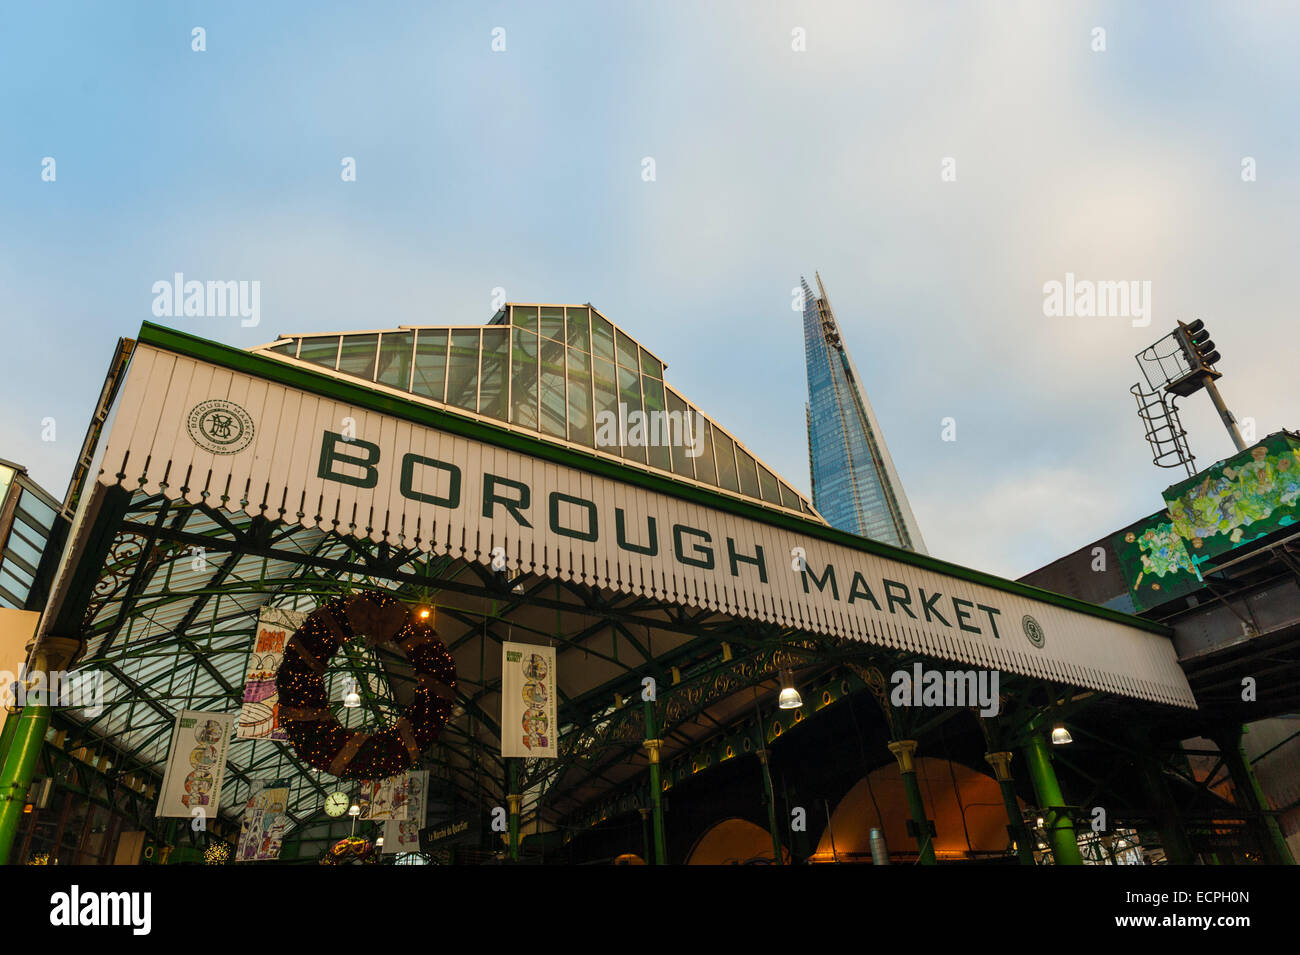 borough market stockfotos borough market bilder alamy. Black Bedroom Furniture Sets. Home Design Ideas